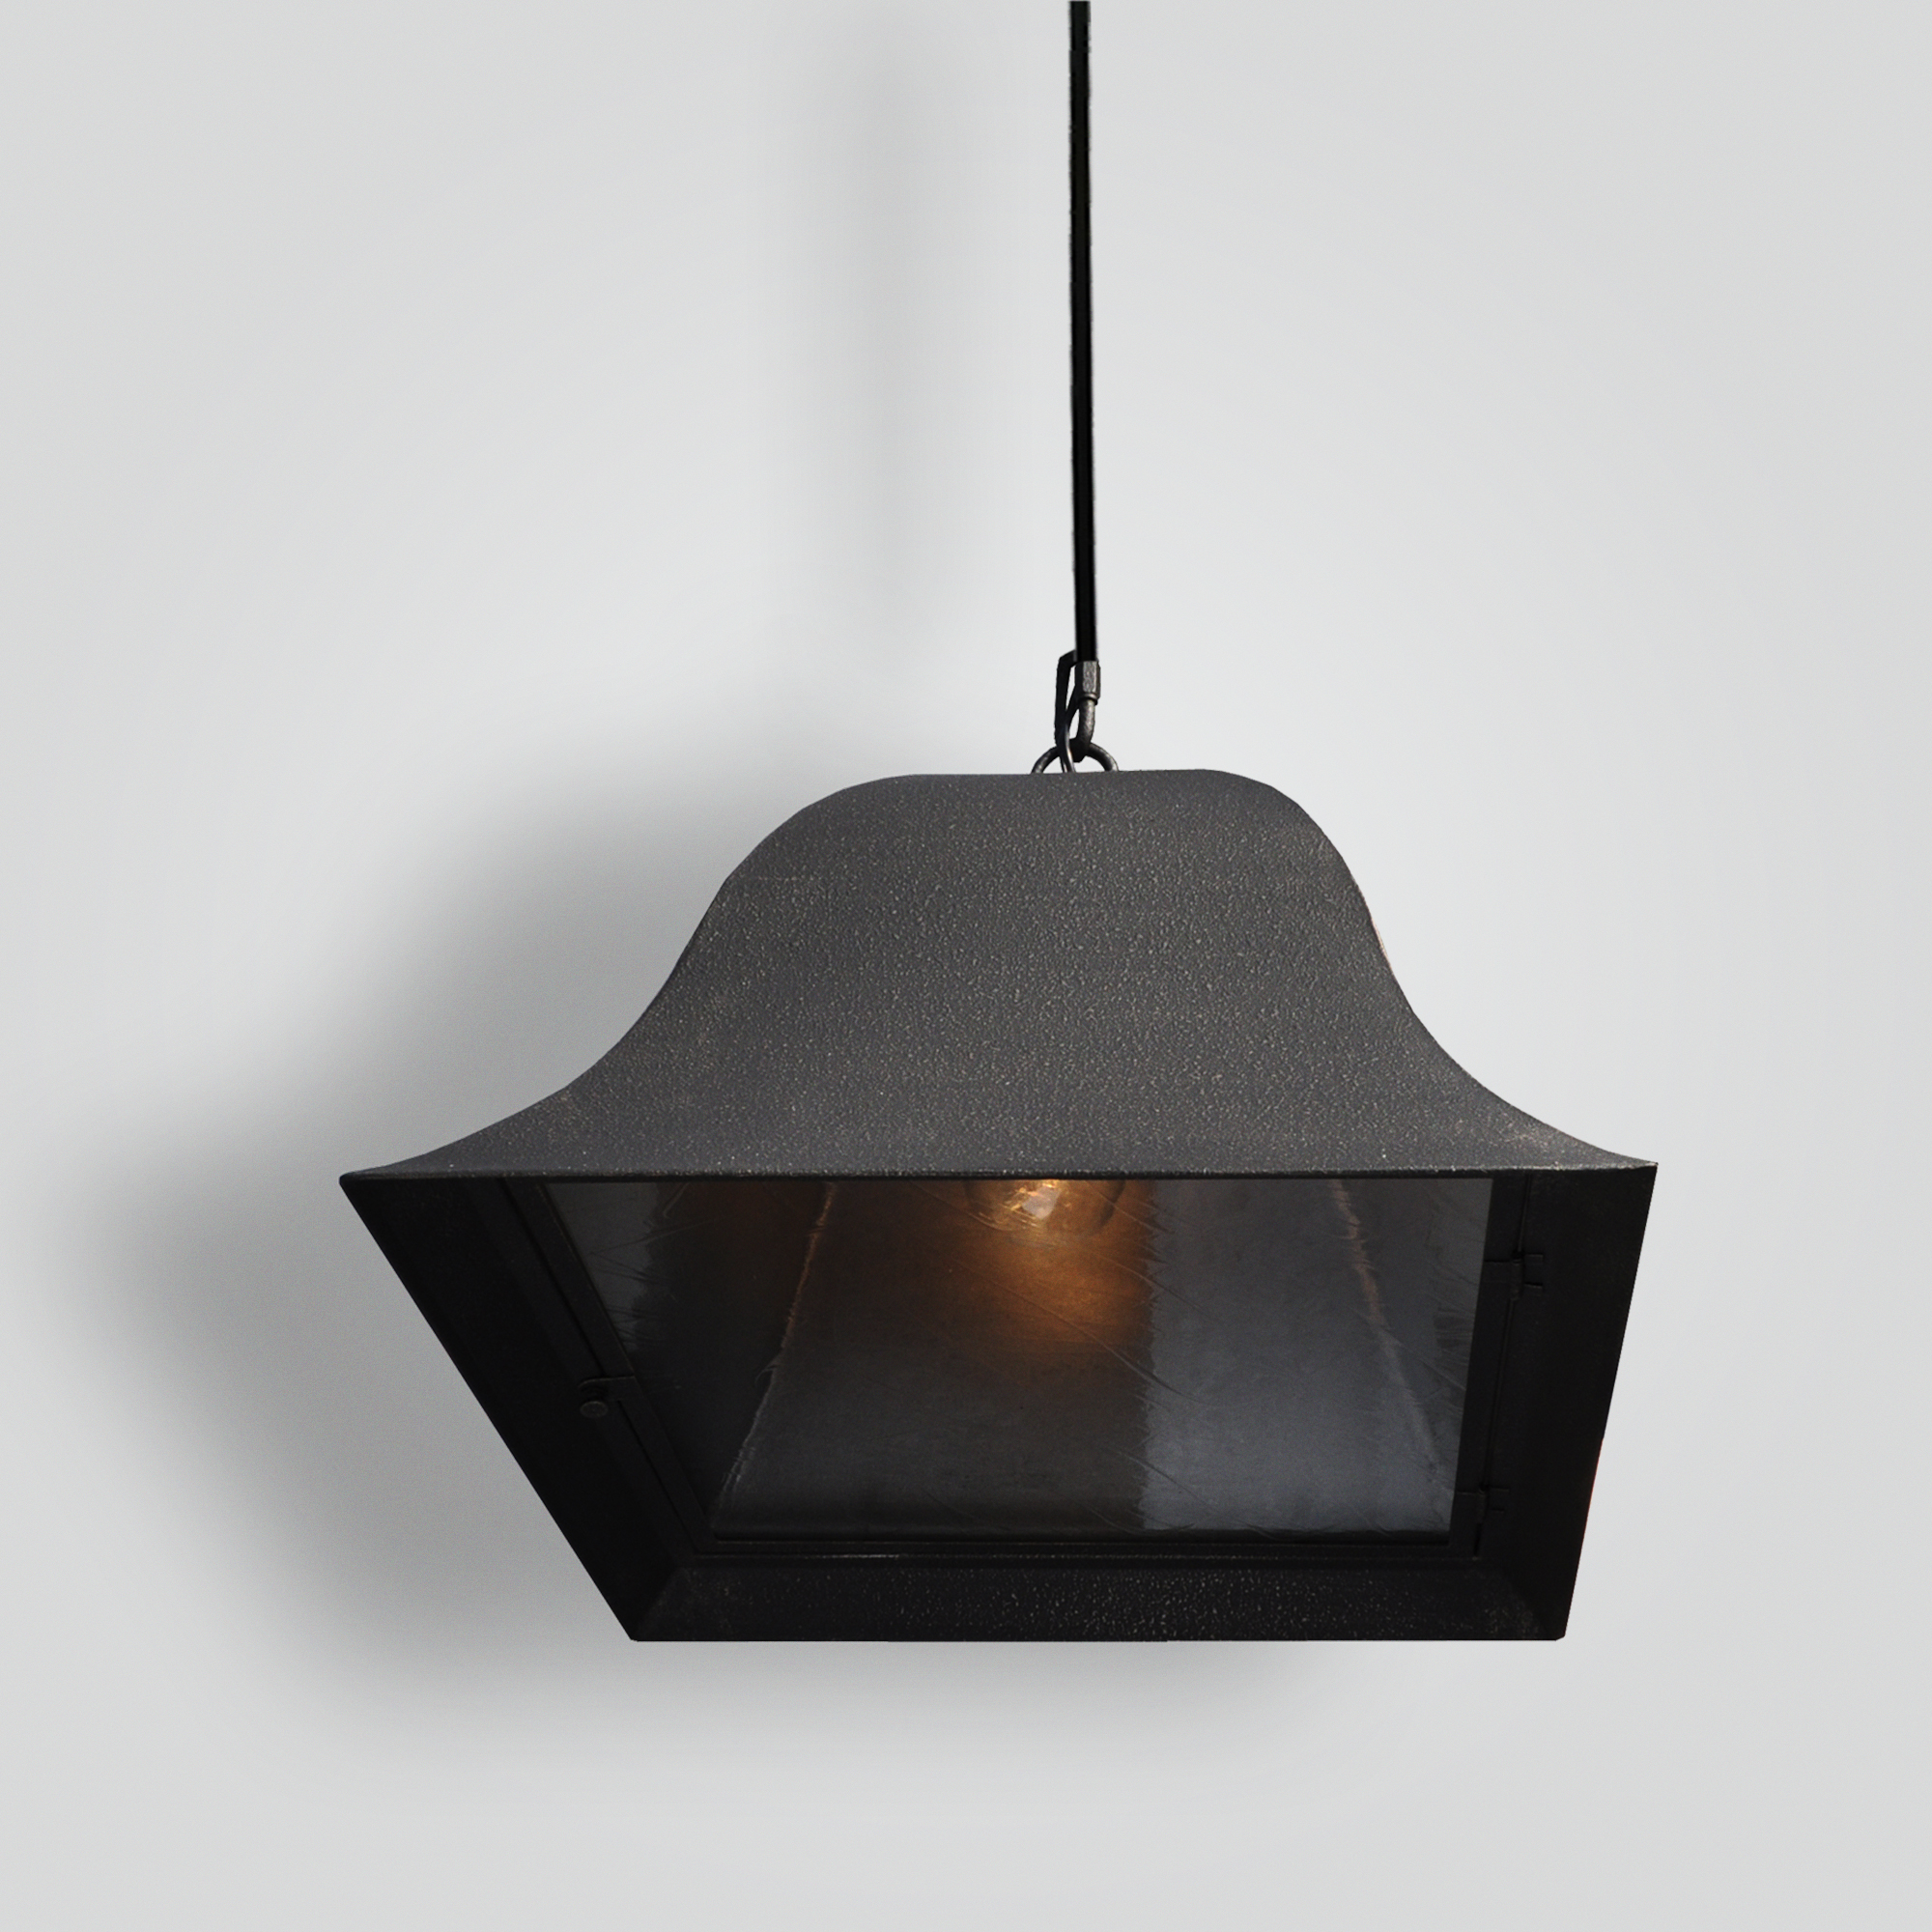 1076-mb-1-je-w-sh Entry Hood – ADG Lighting Collection